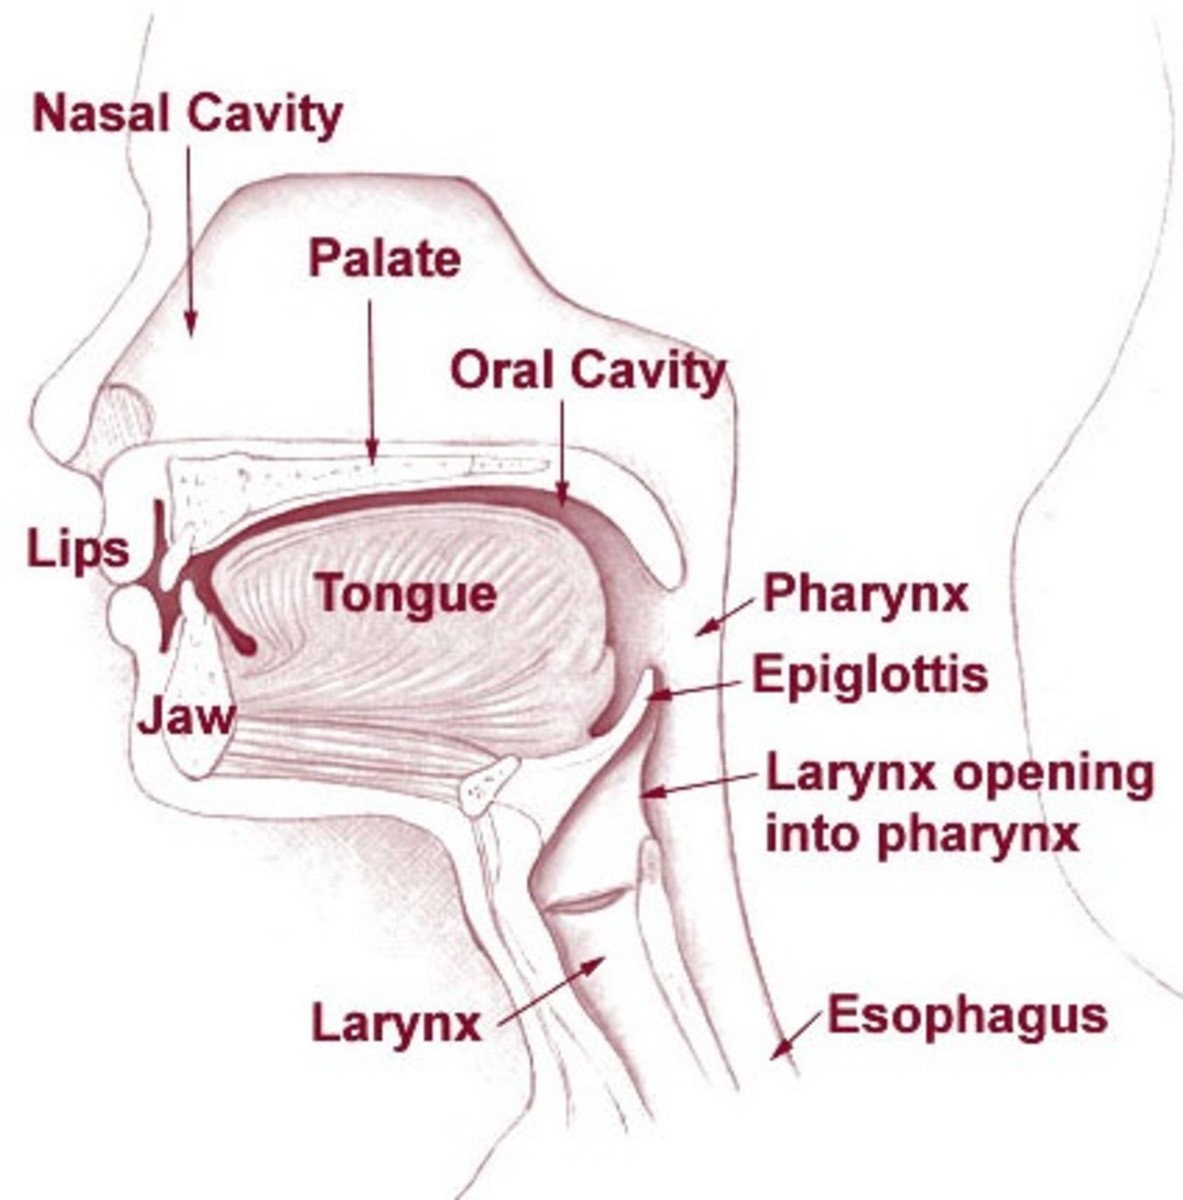 The larynx, or voice box, is the upper section of the trachea, or windpipe. The esophagus is located behind the trachea.